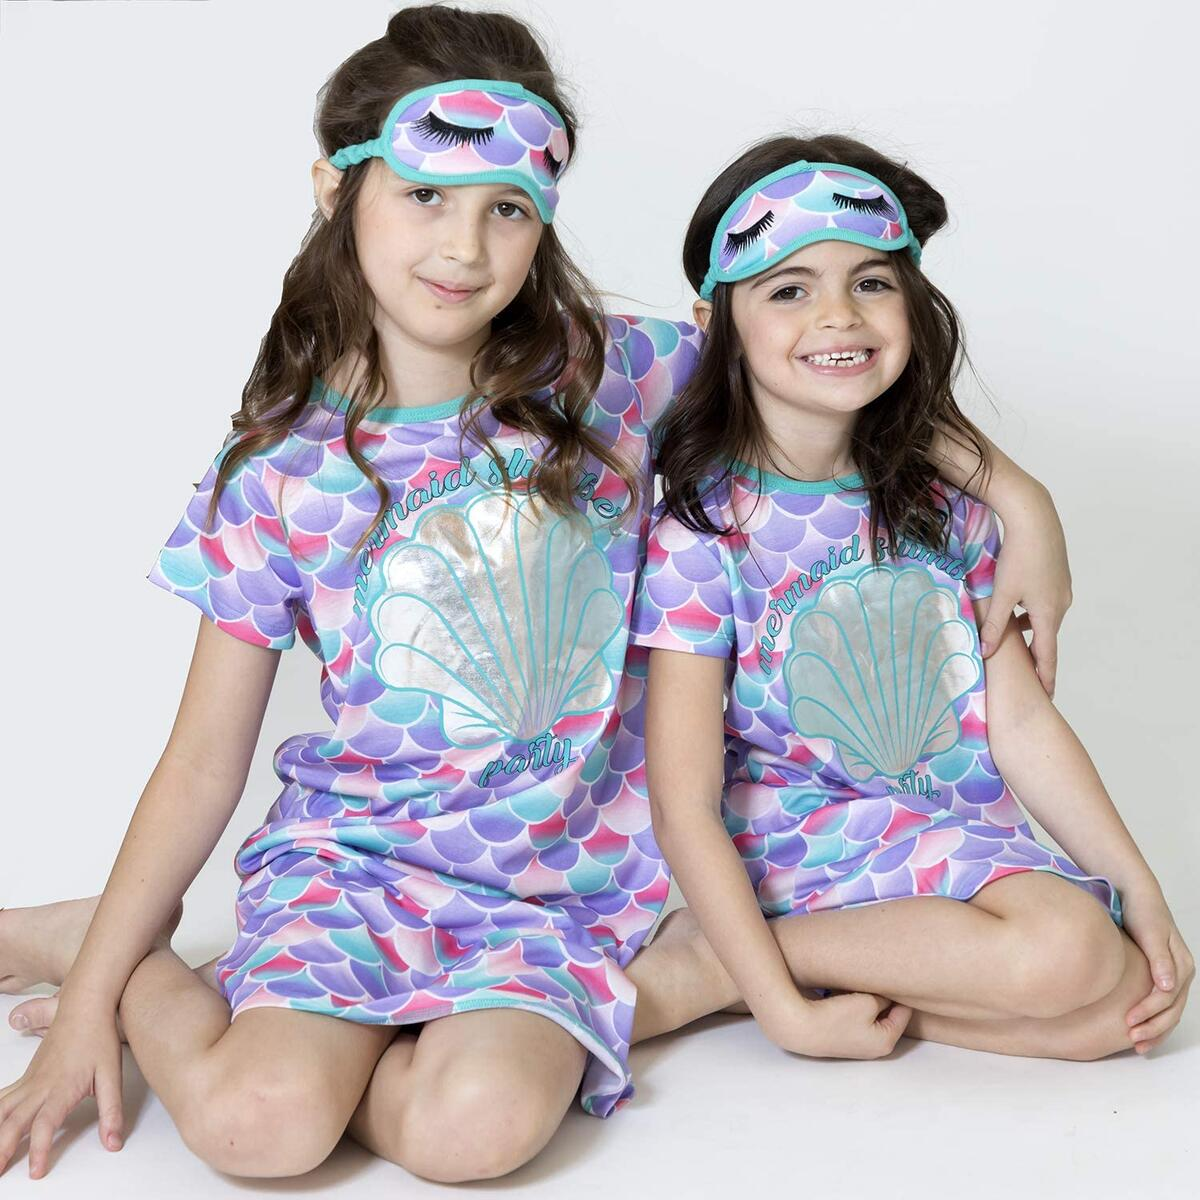 Rebate Only For Color: Pink/Blue Size: 12. Girls Sleep Shirt Nightgown for Girls Unicorn Mermaid Pajamas Matching Mask